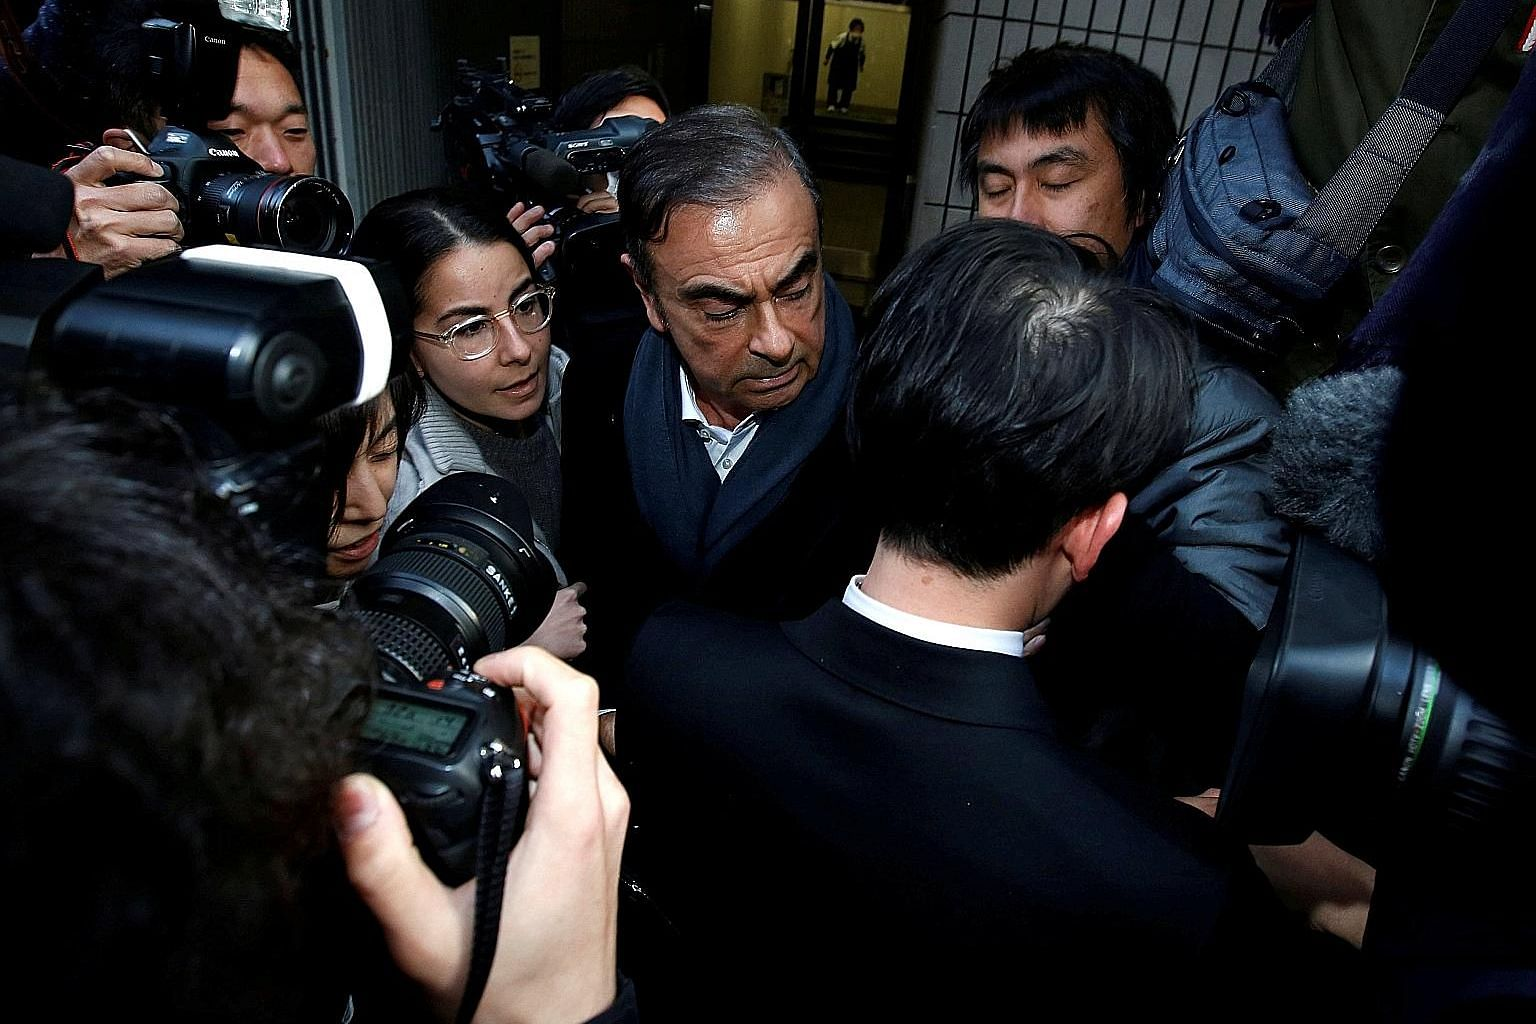 Former Nissan chairman Carlos Ghosn (left) leaving the office of his lead lawyer Junichiro Hironaka (above), in Tokyo last month. Mr Hironaka said the court plans to try Ghosn, Nissan and the tycoon's former right-hand man Greg Kelly together, and he